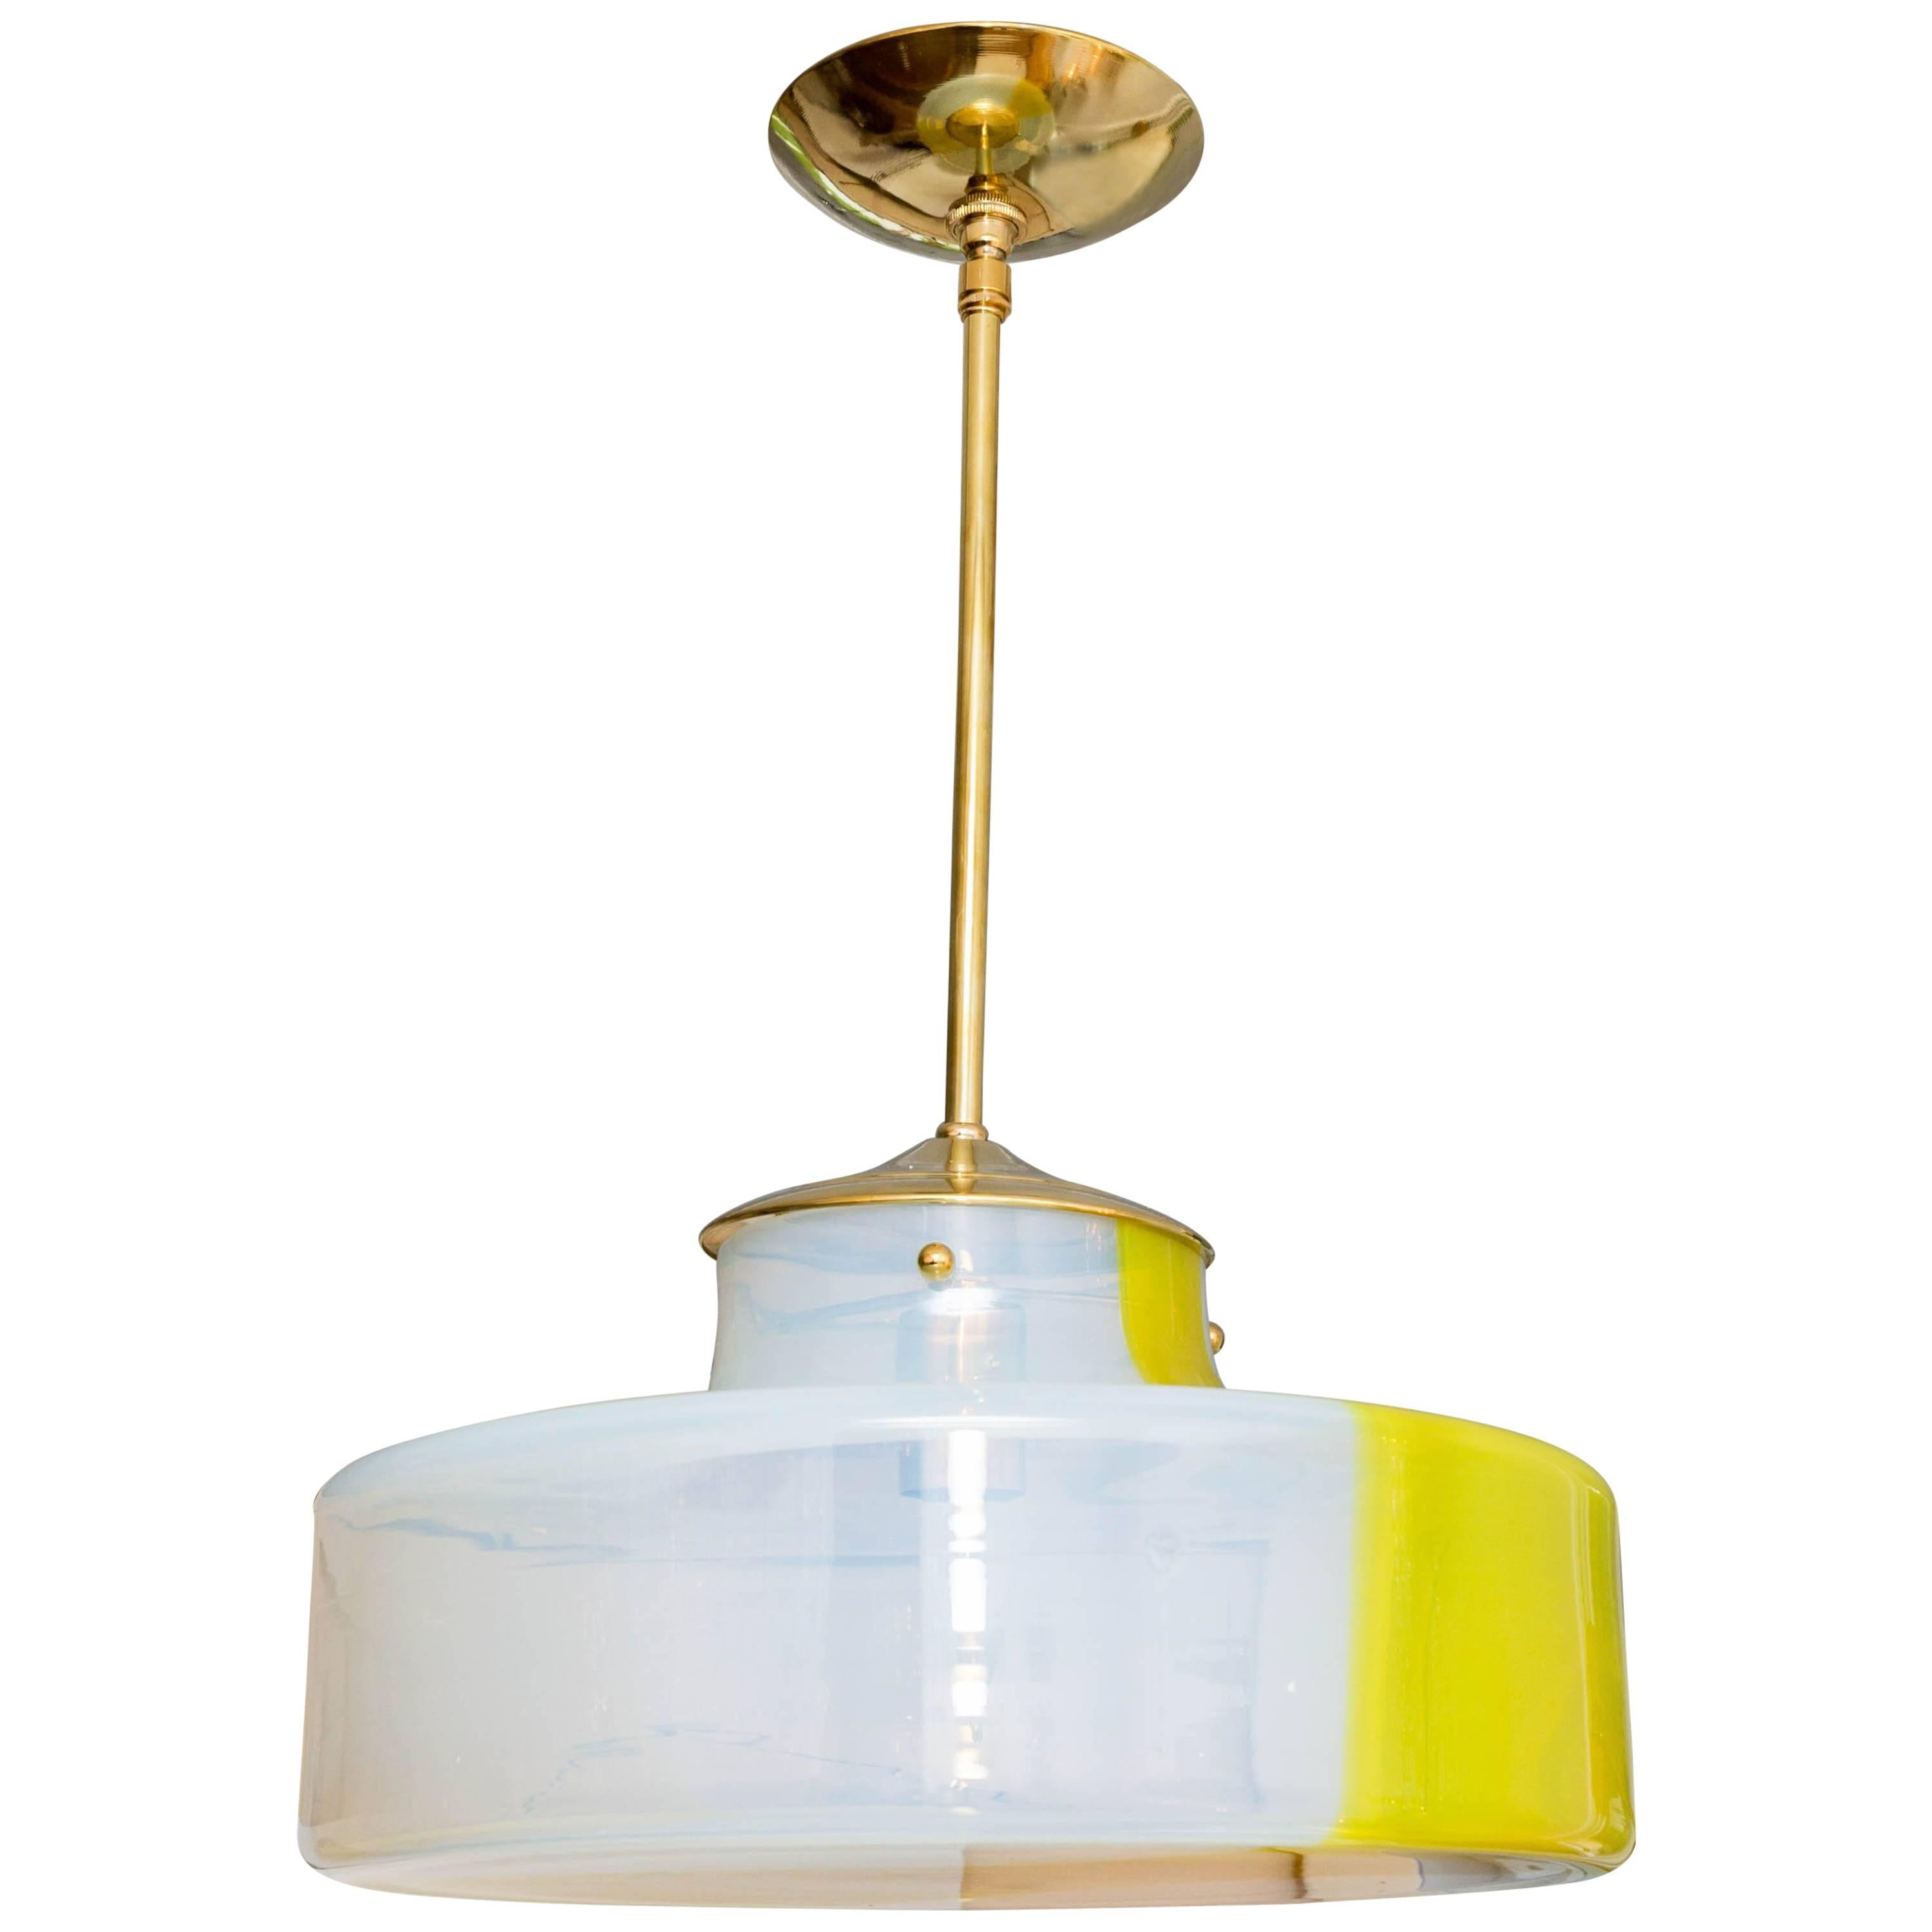 Murano Green And White Opaque Globe Pendant Light Fixture With